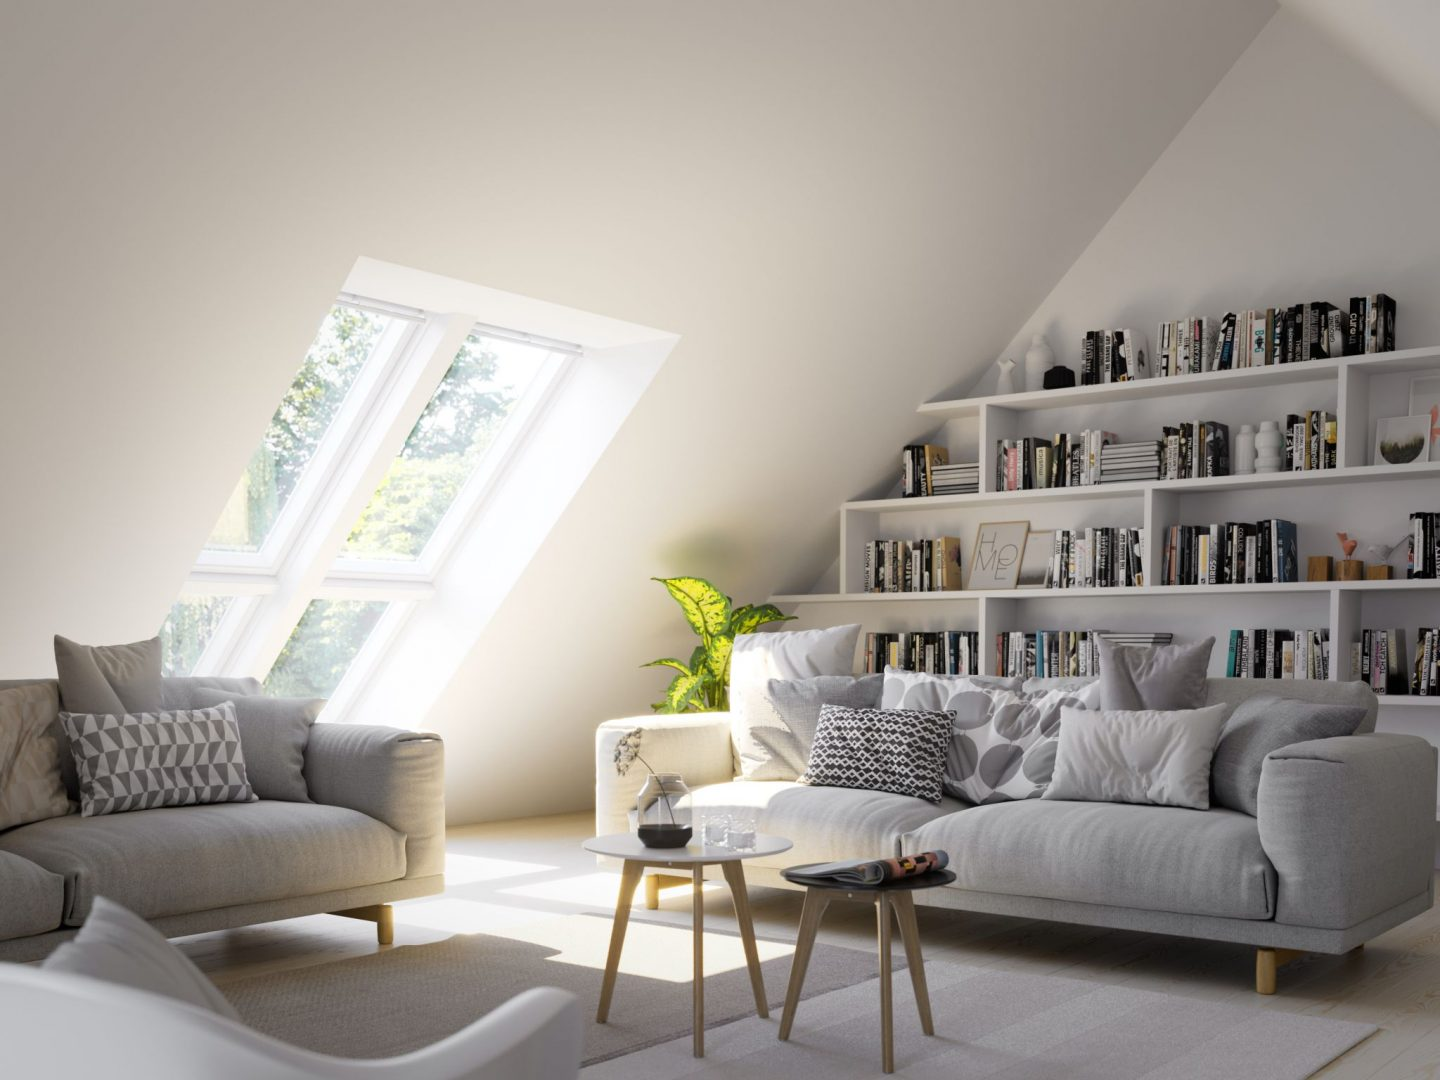 How Adding Daylight to your Home will Increase your Wellbeing, Velux image, Hello Peagreen Interiors tips, natural light